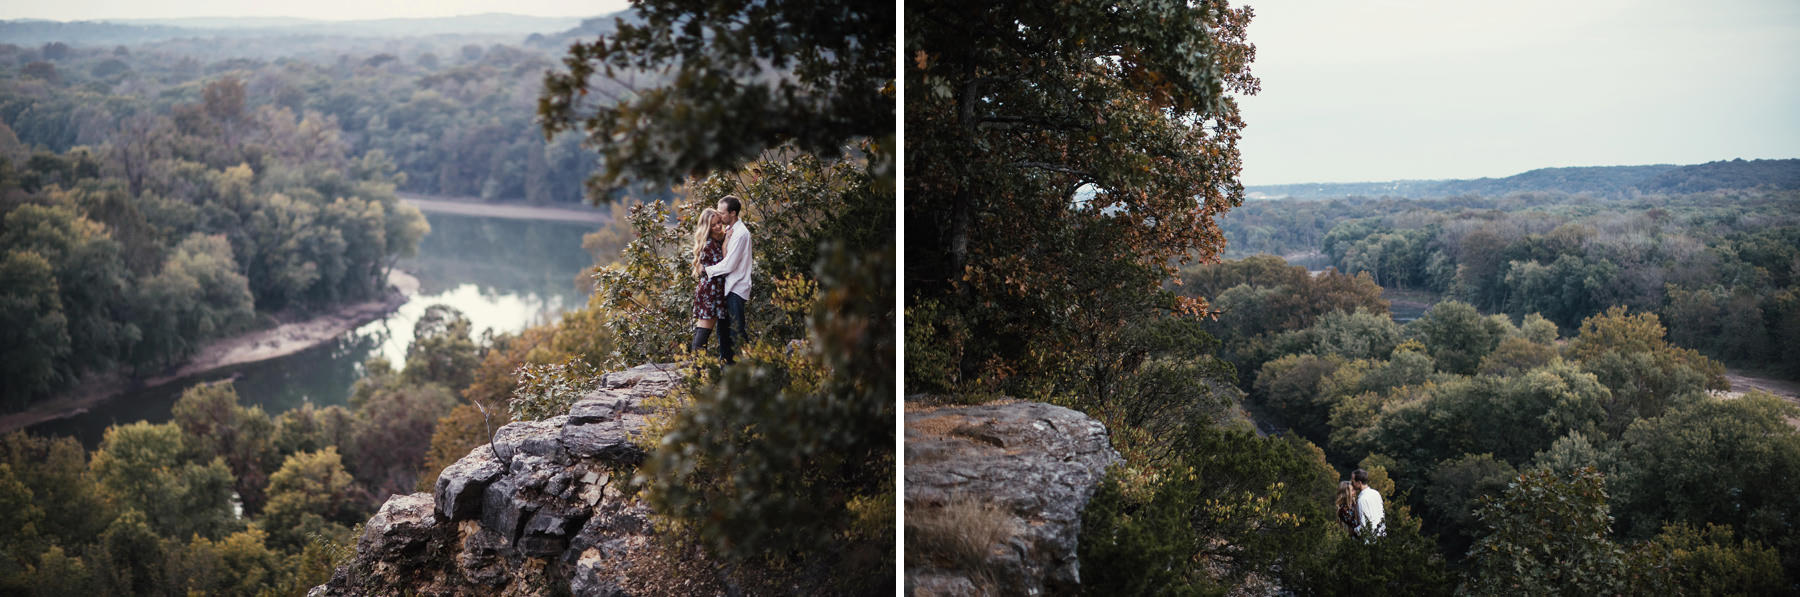 Castlewood State Park_Engagement Photos_Kindling Wedding Photography Blog16.JPG